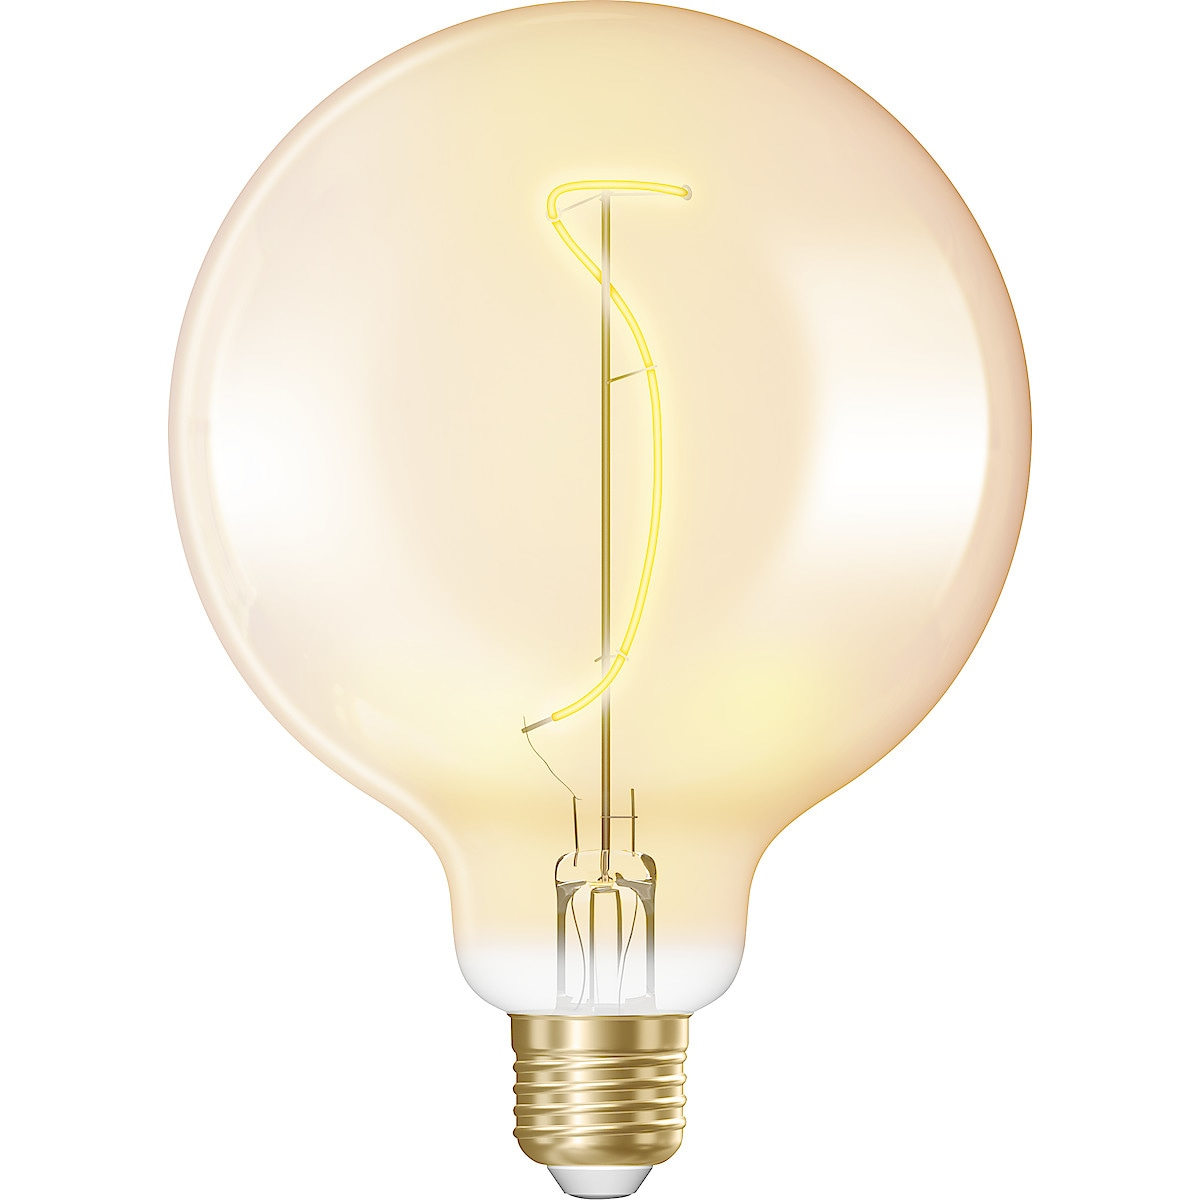 Northlight Amber E27 Globe LED Filament Bulb